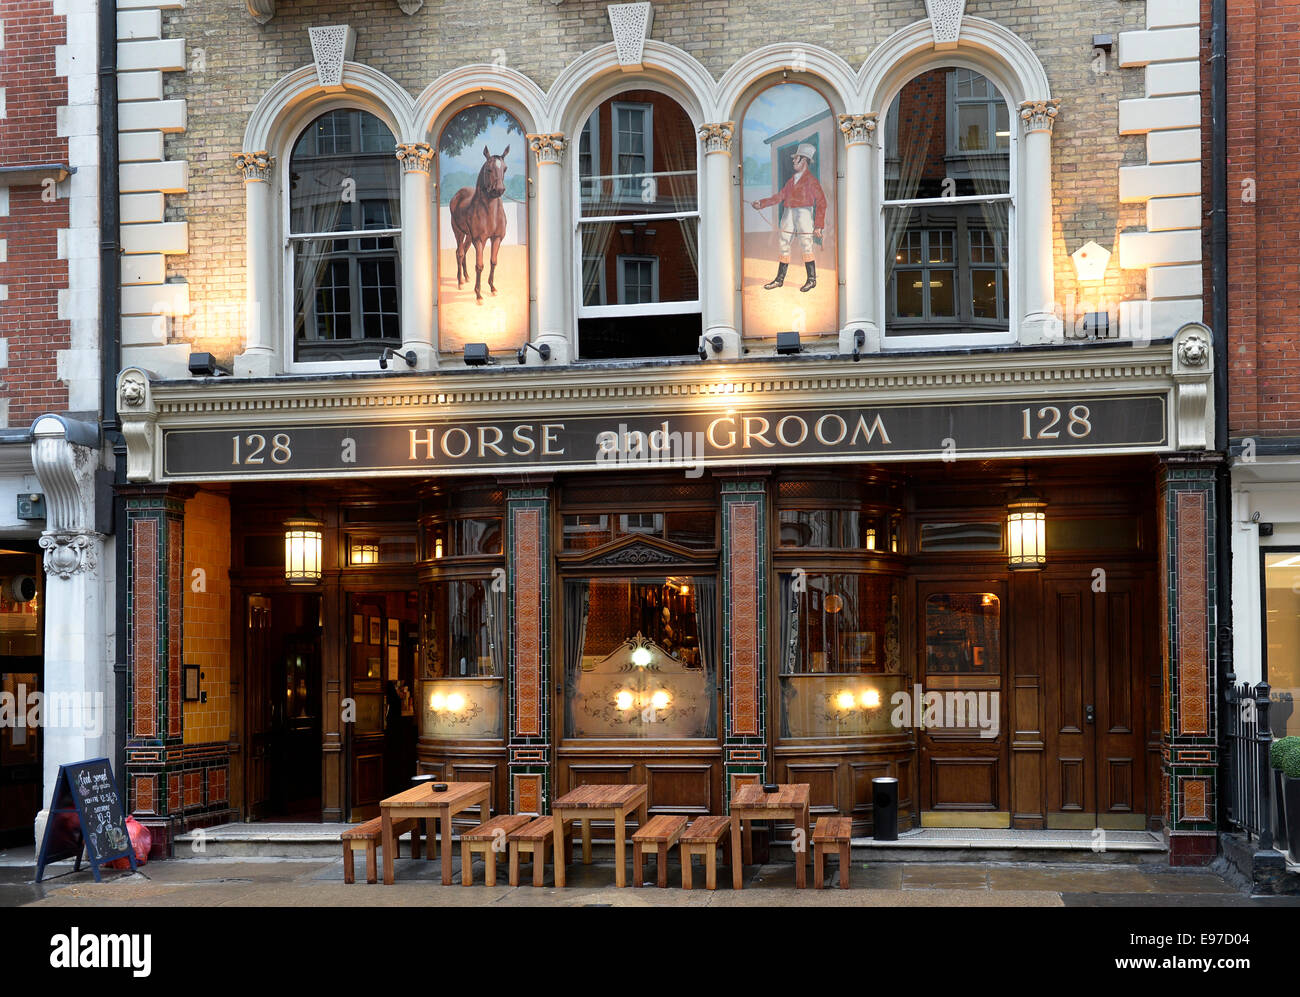 The Horse and Groom Public House, Great Portland Street, London  W1W 6PX - Stock Image